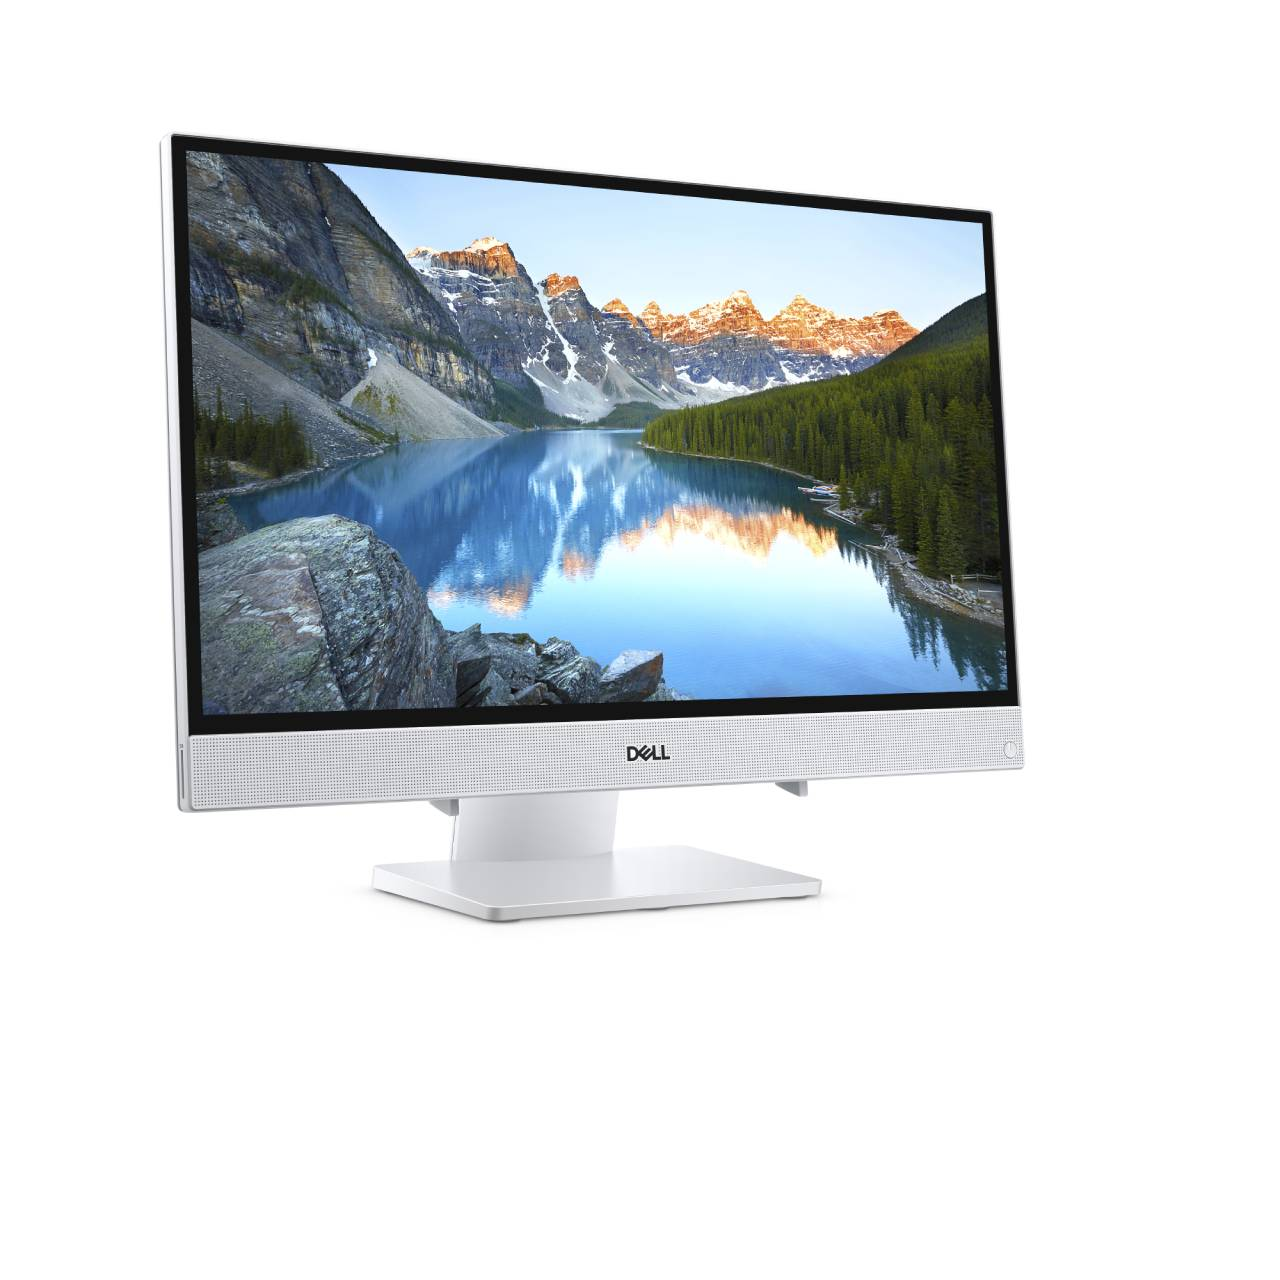 Dell Inspiron 24 3480 All-in-One 23 8